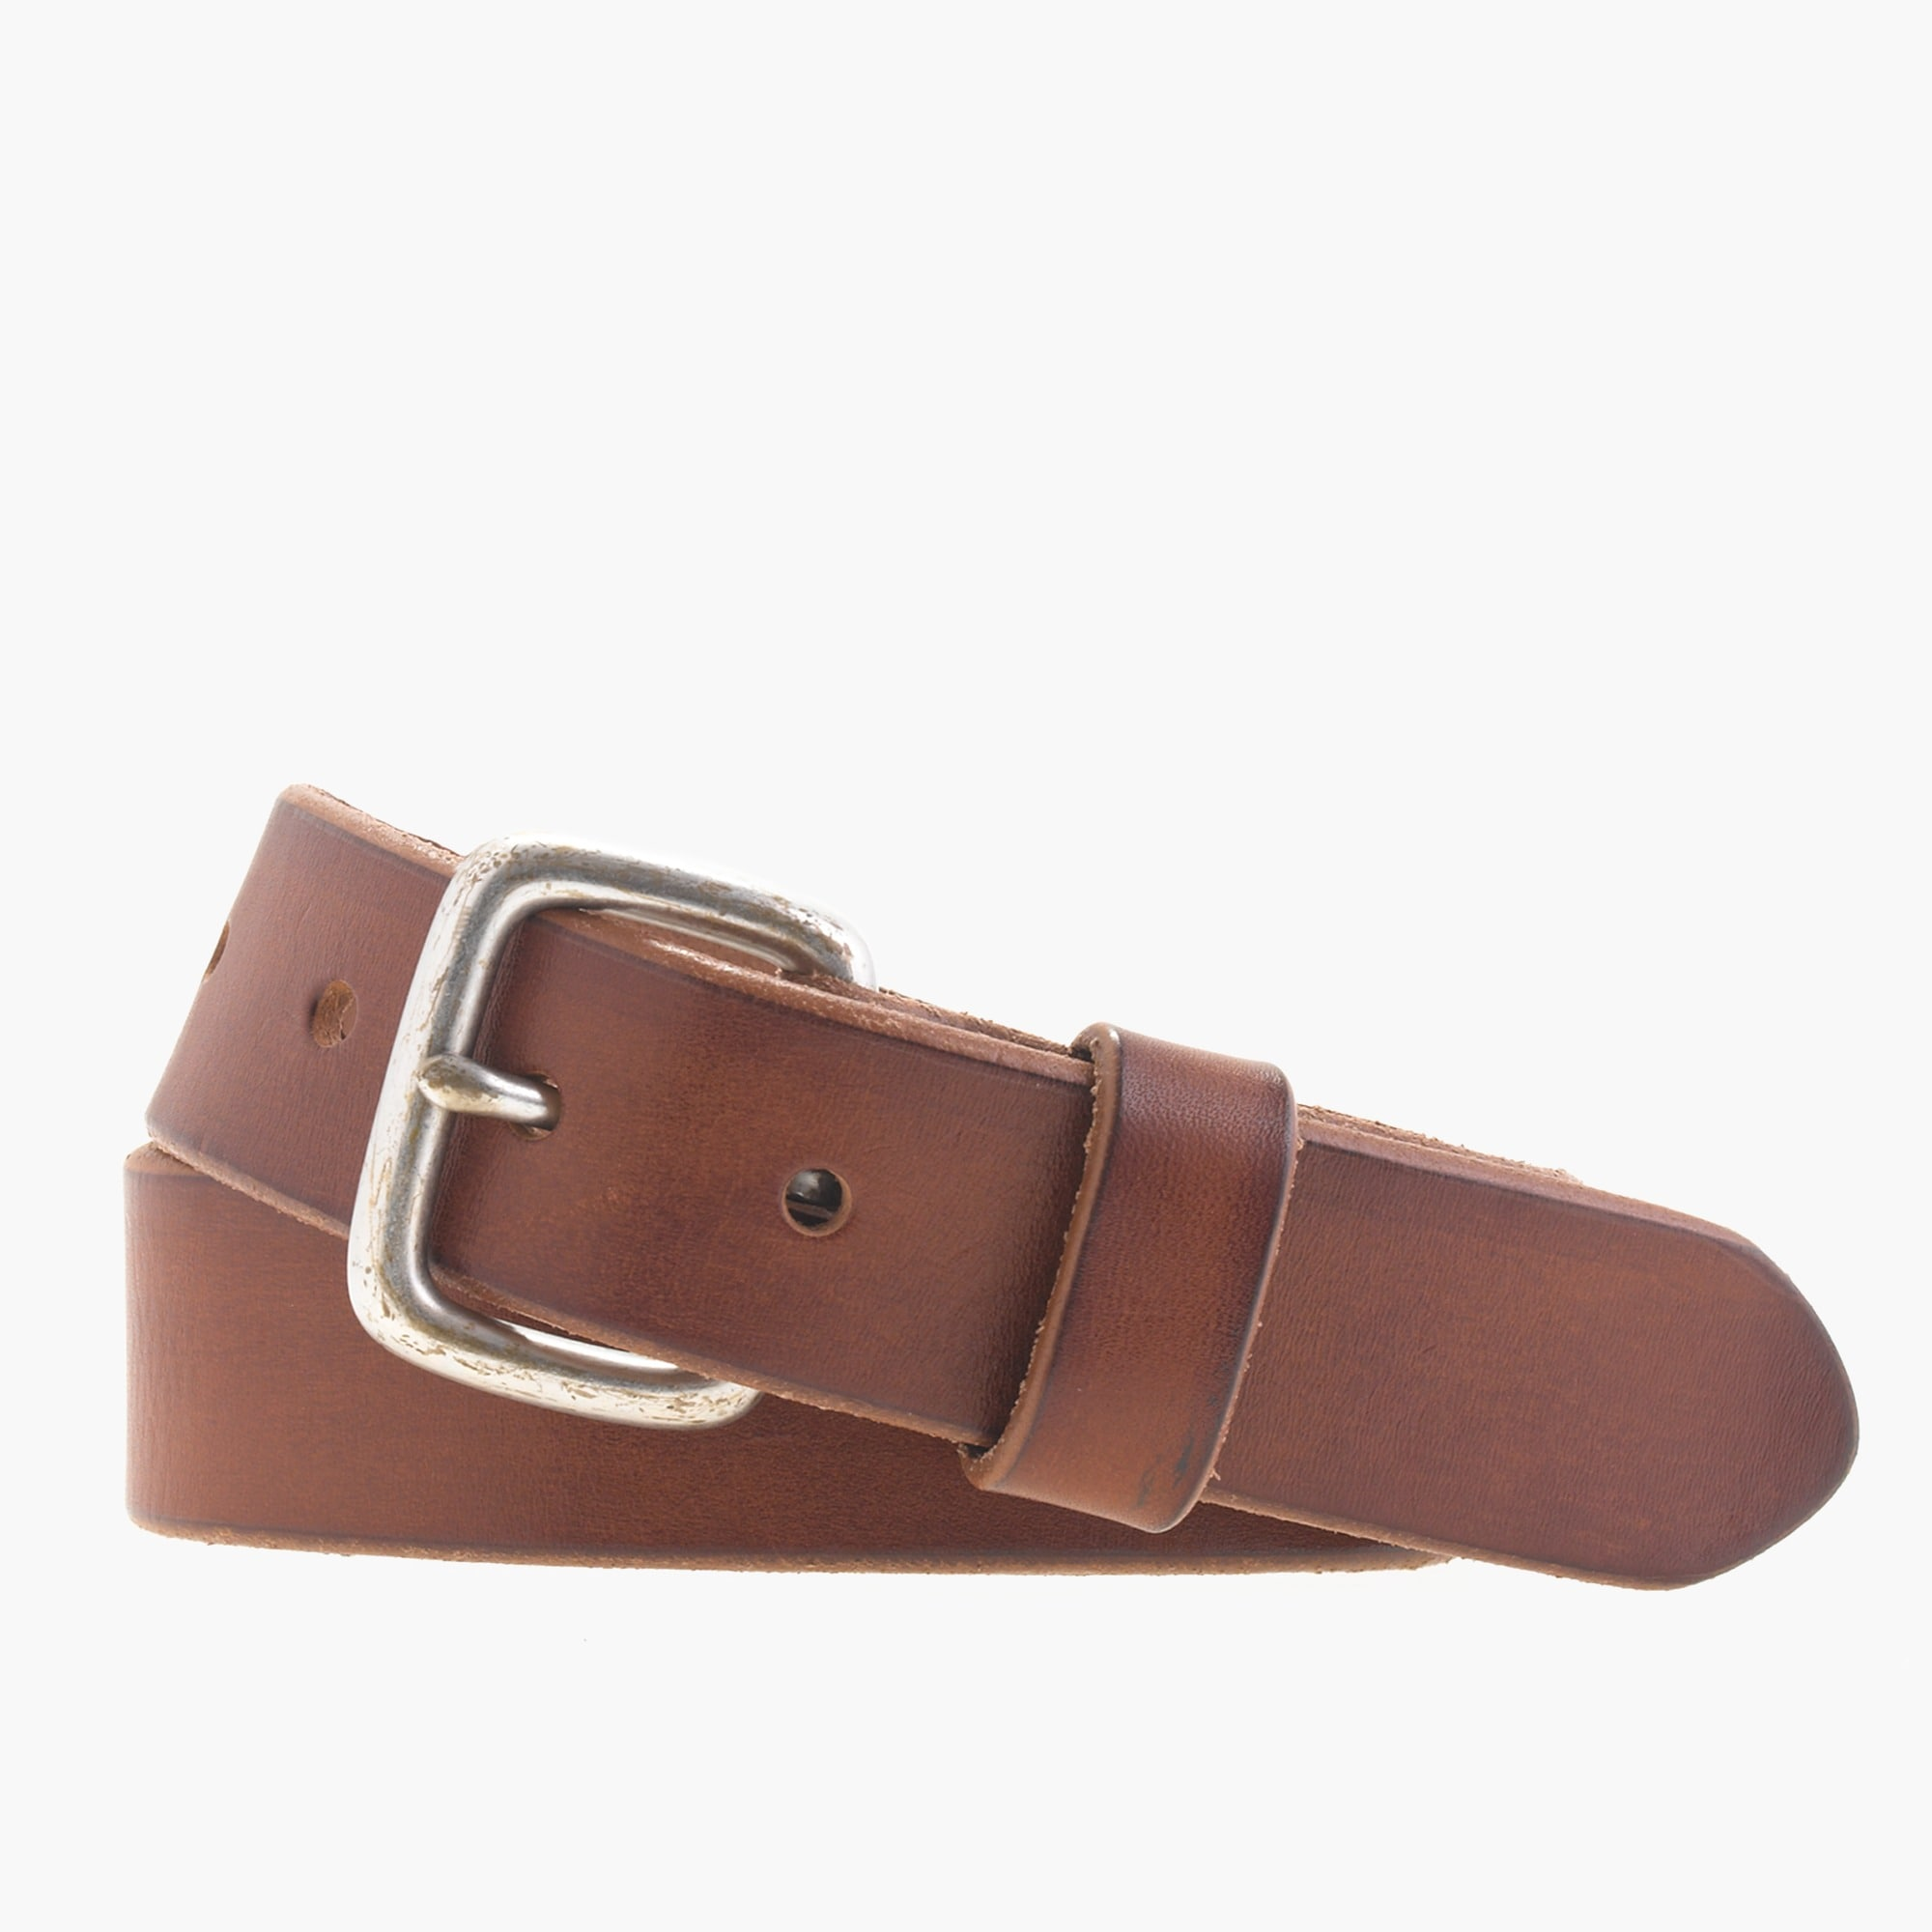 Leather belt men accessories c